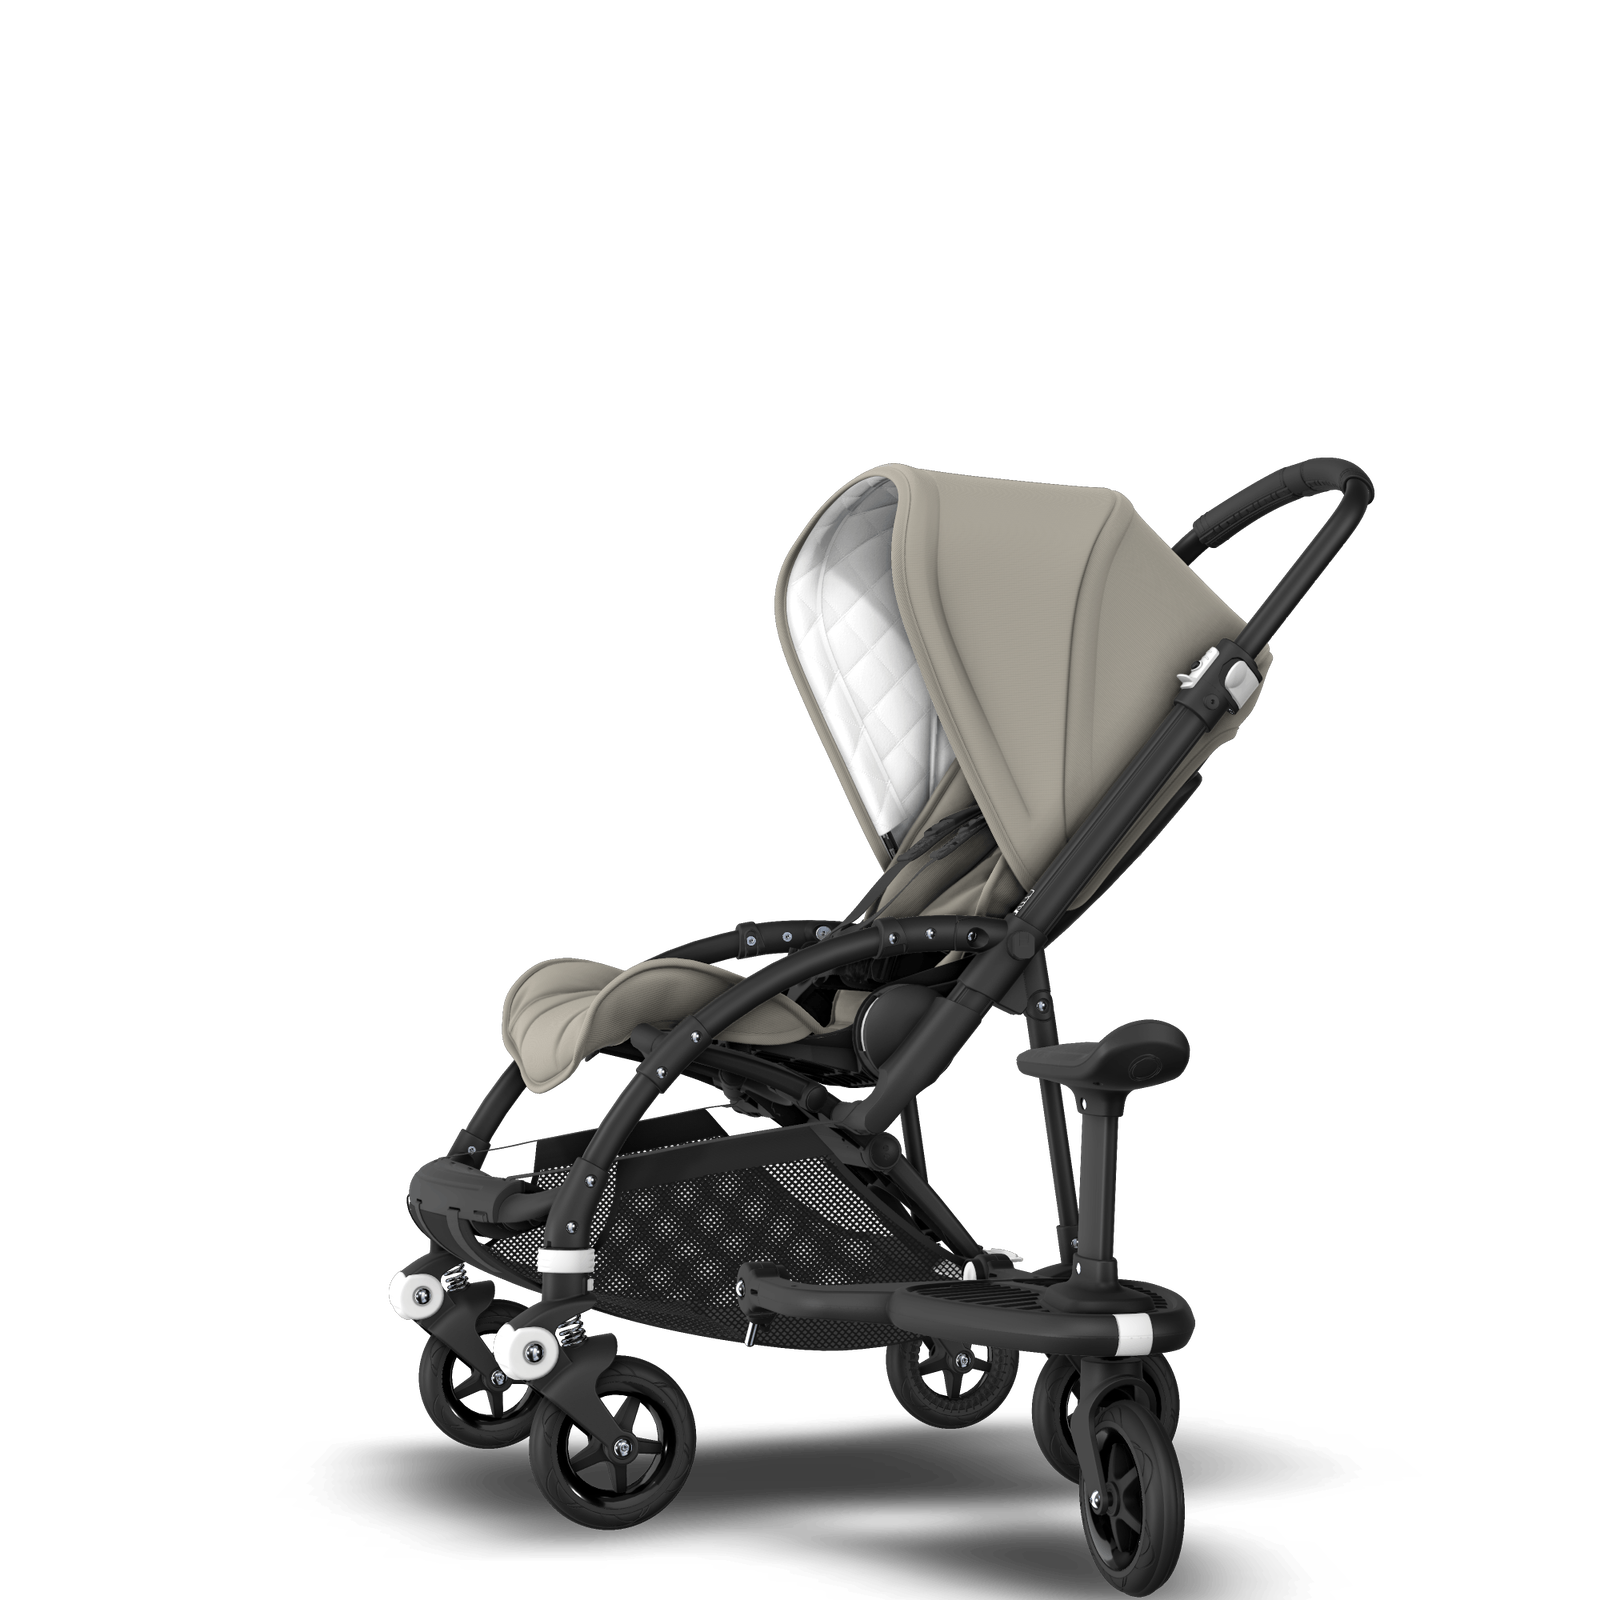 Bugaboo Bee5 Seat stroller sit and stand